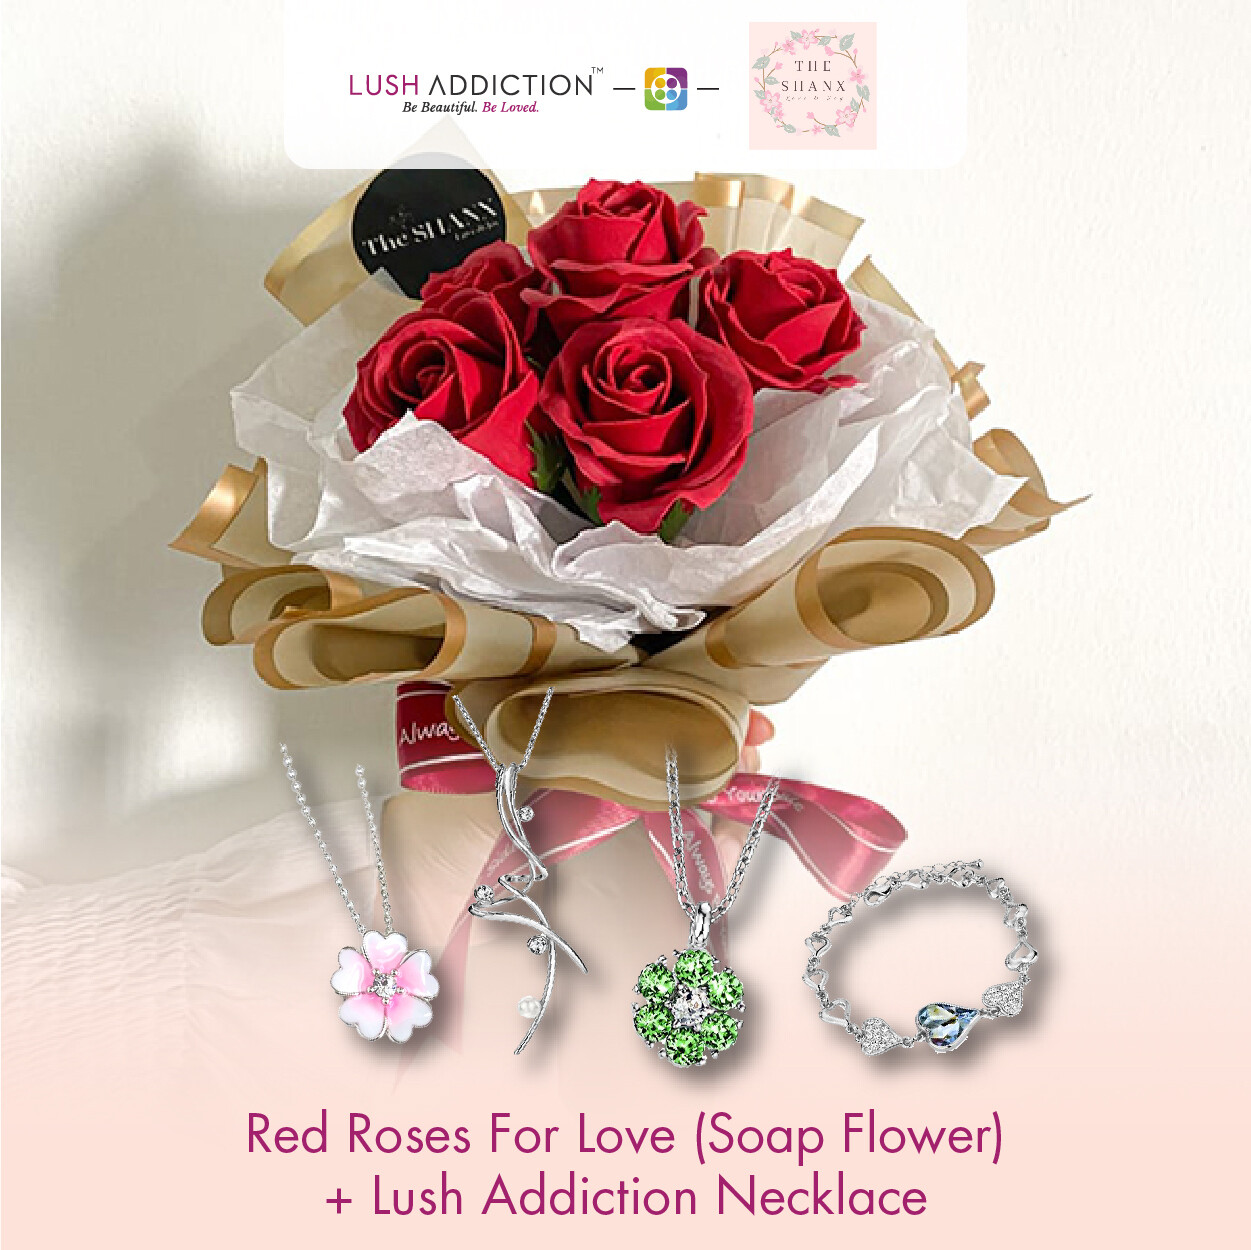 Red Roses for Love (Soap Flower) + Lush Addiction Necklace (By: The Shanx Florist from Melaka)